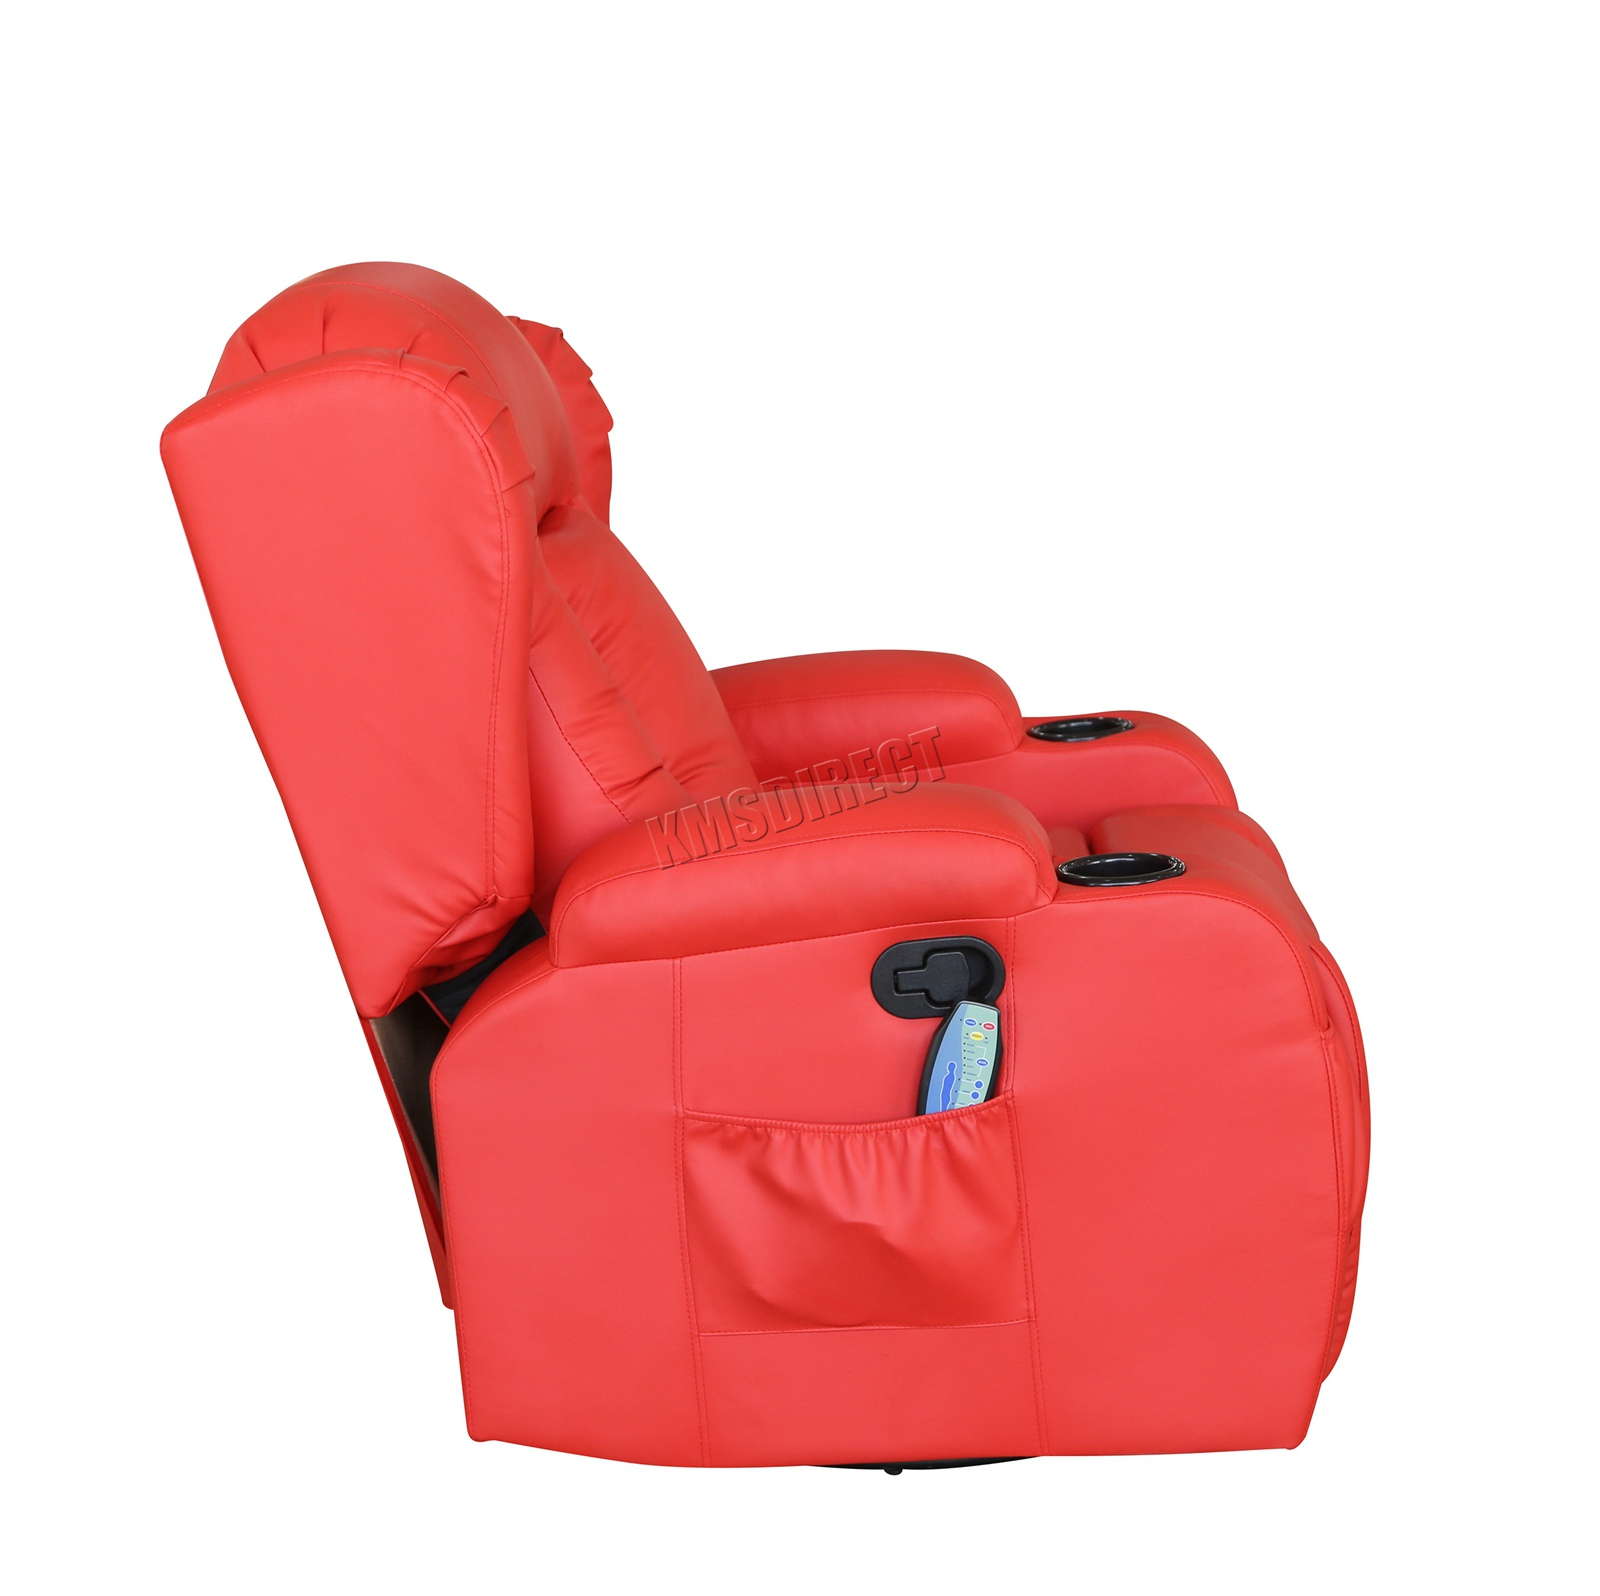 WESTWOOD-Leather-Recliner-Armchair-Swivel-Heated-chair-Massage-Gaming-Chair thumbnail 49